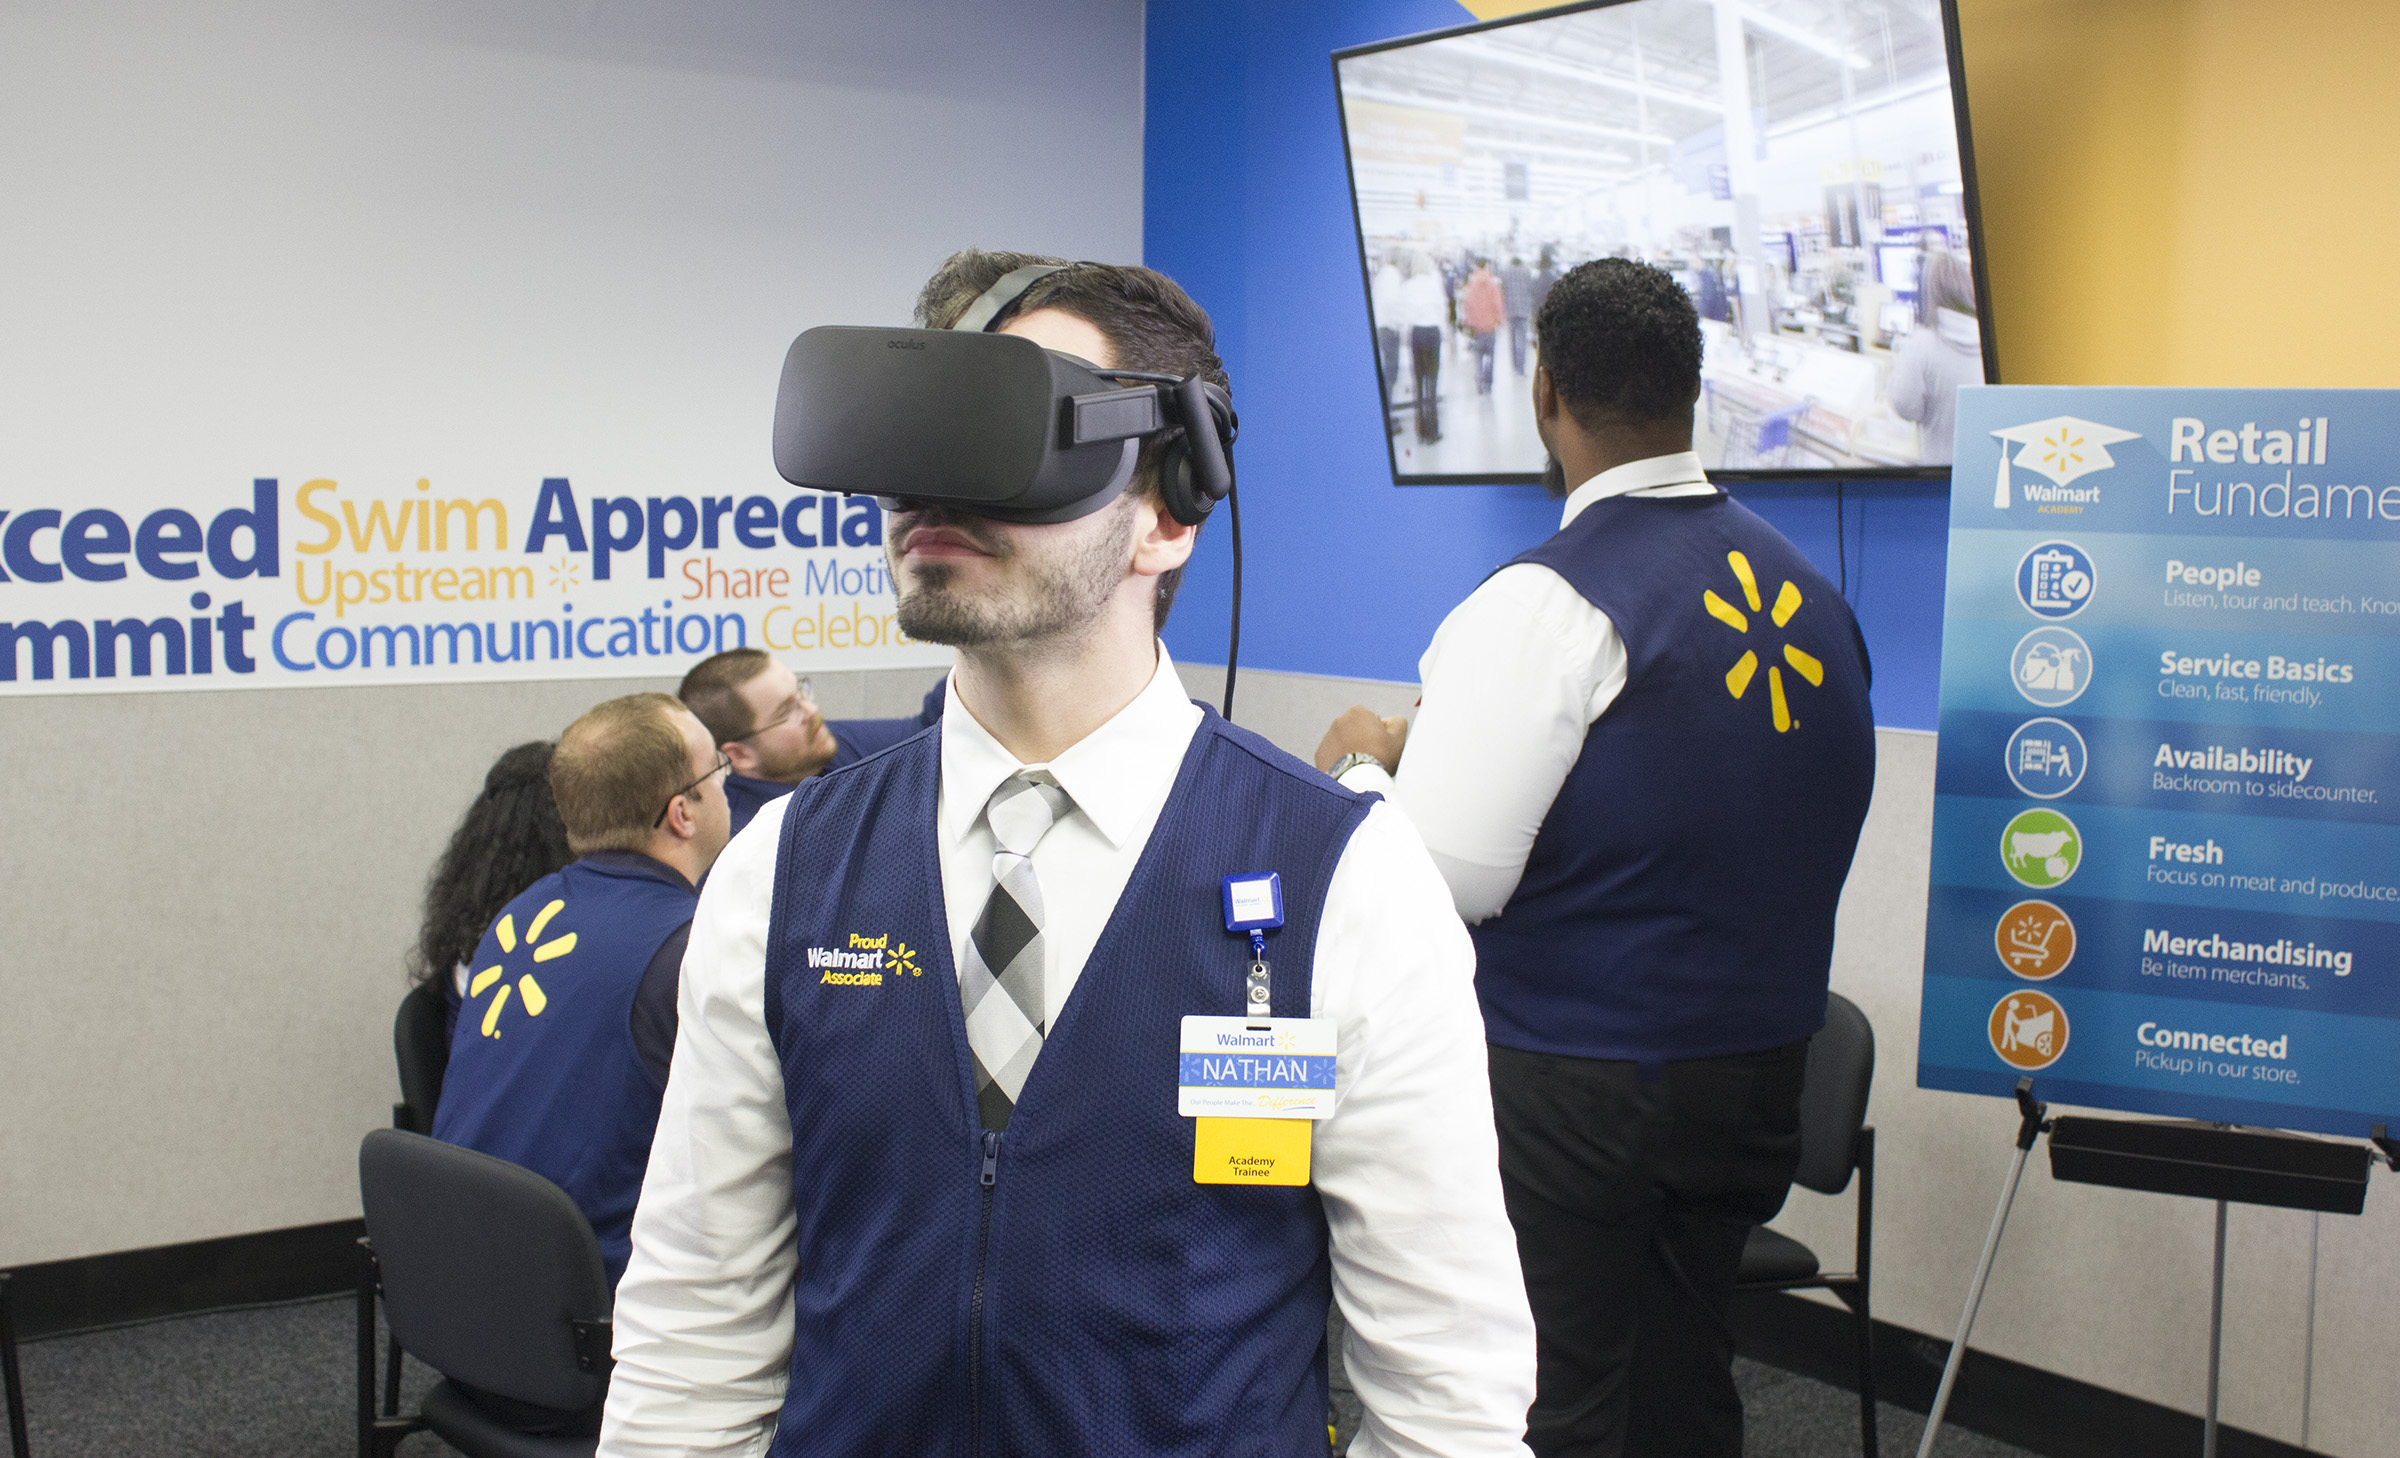 New WalMart employee completing orientation using a virtual reality headset